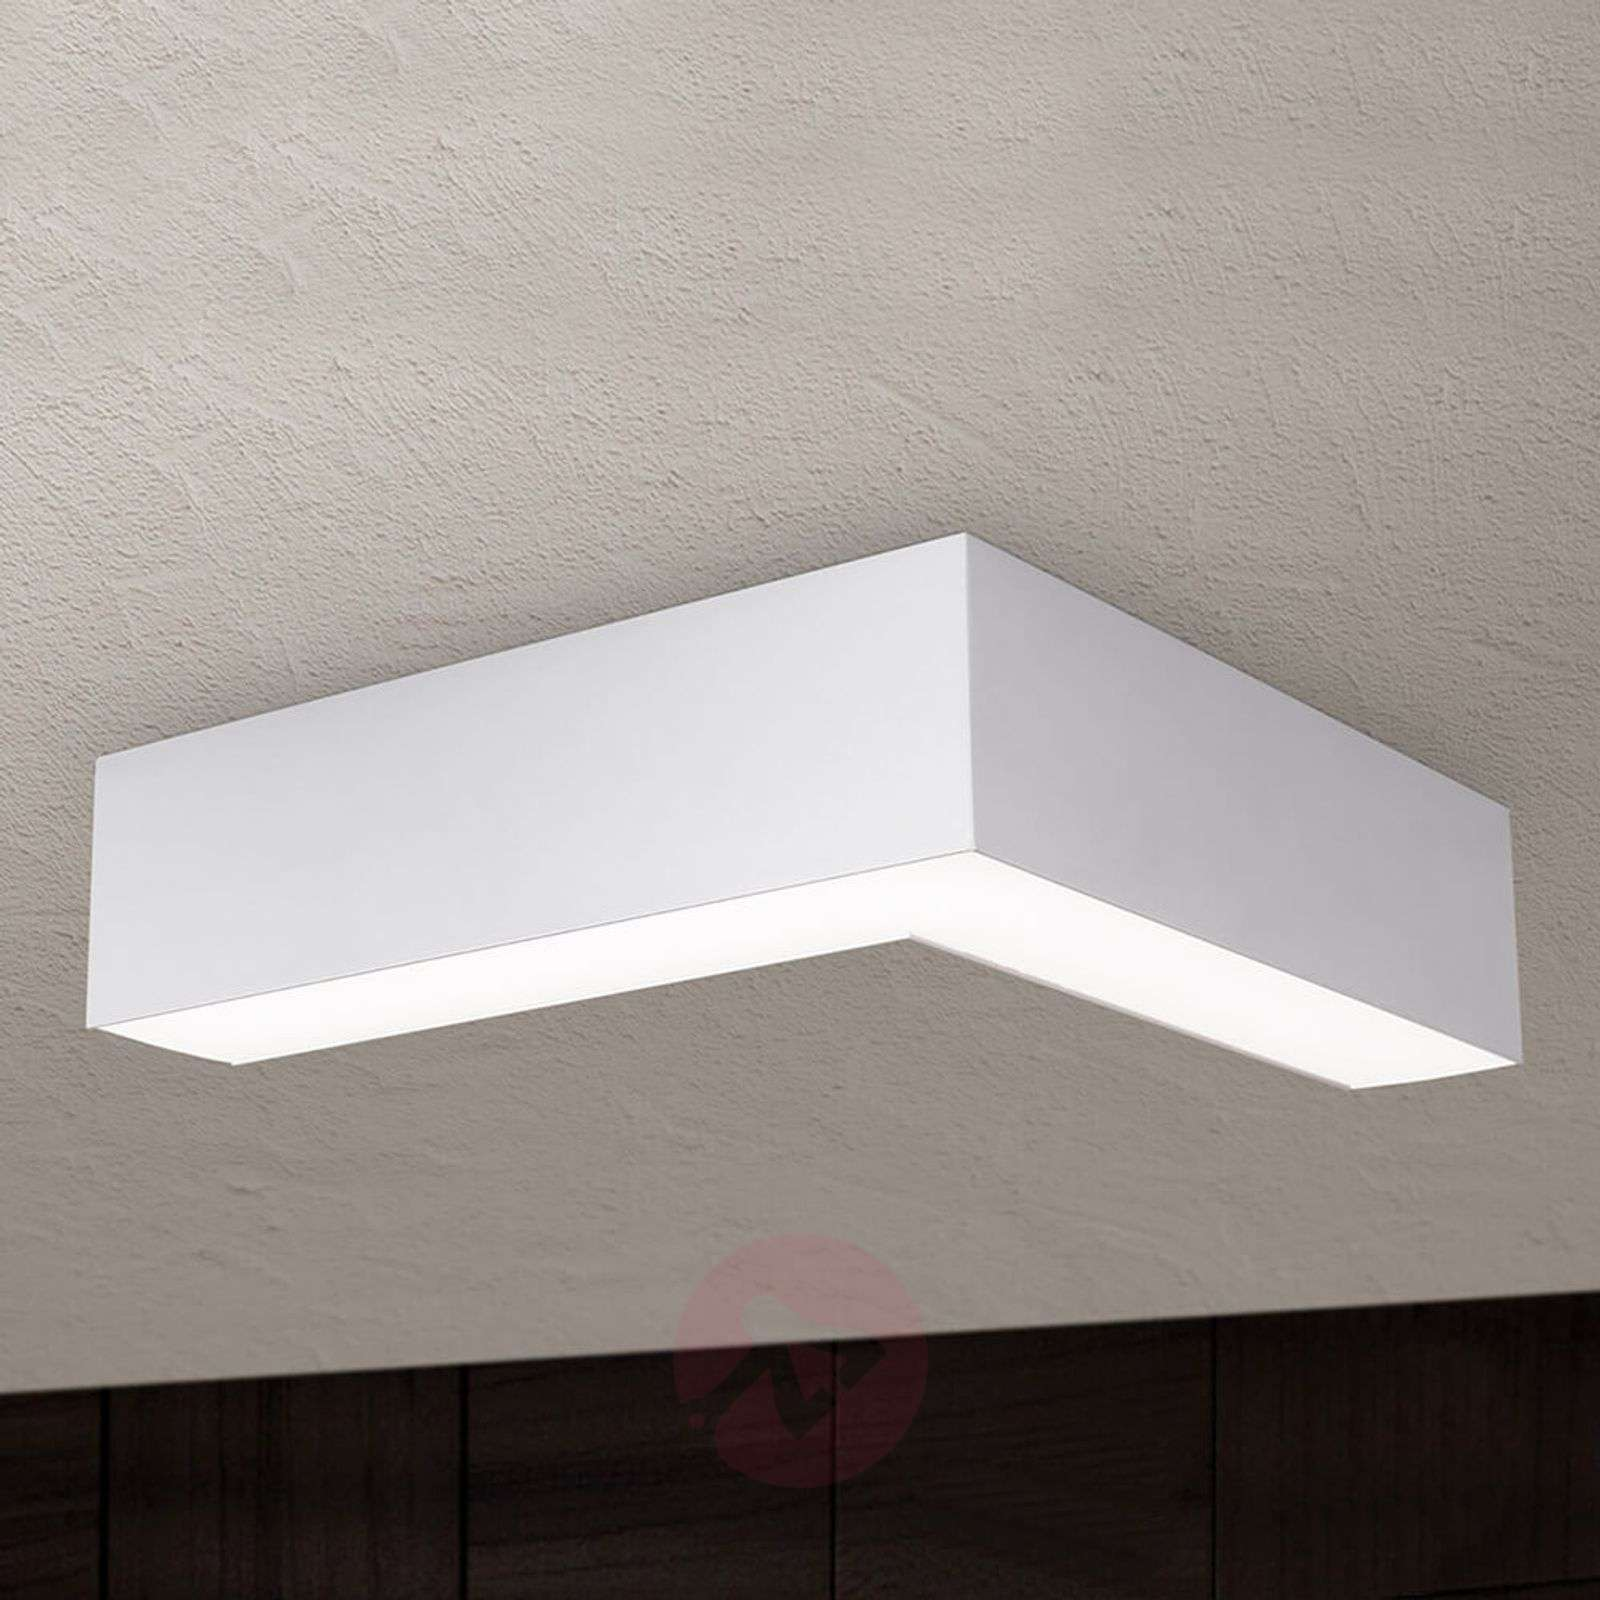 LED ceiling light Sando, suspension kit 30x30 cm-7255318-01